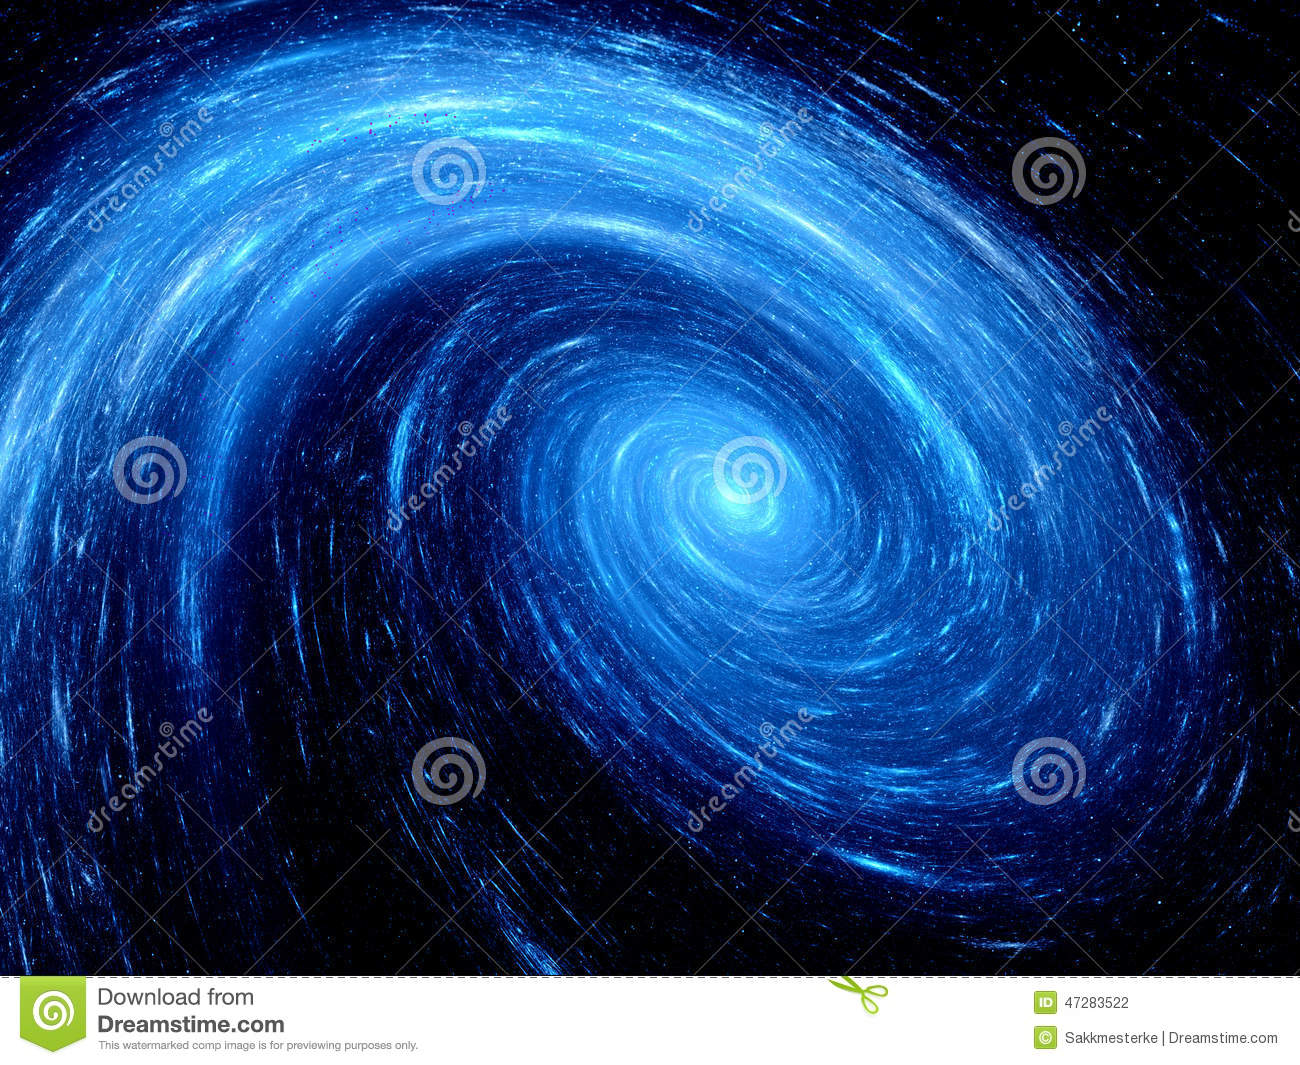 blue spiral galaxy abstract - photo #1